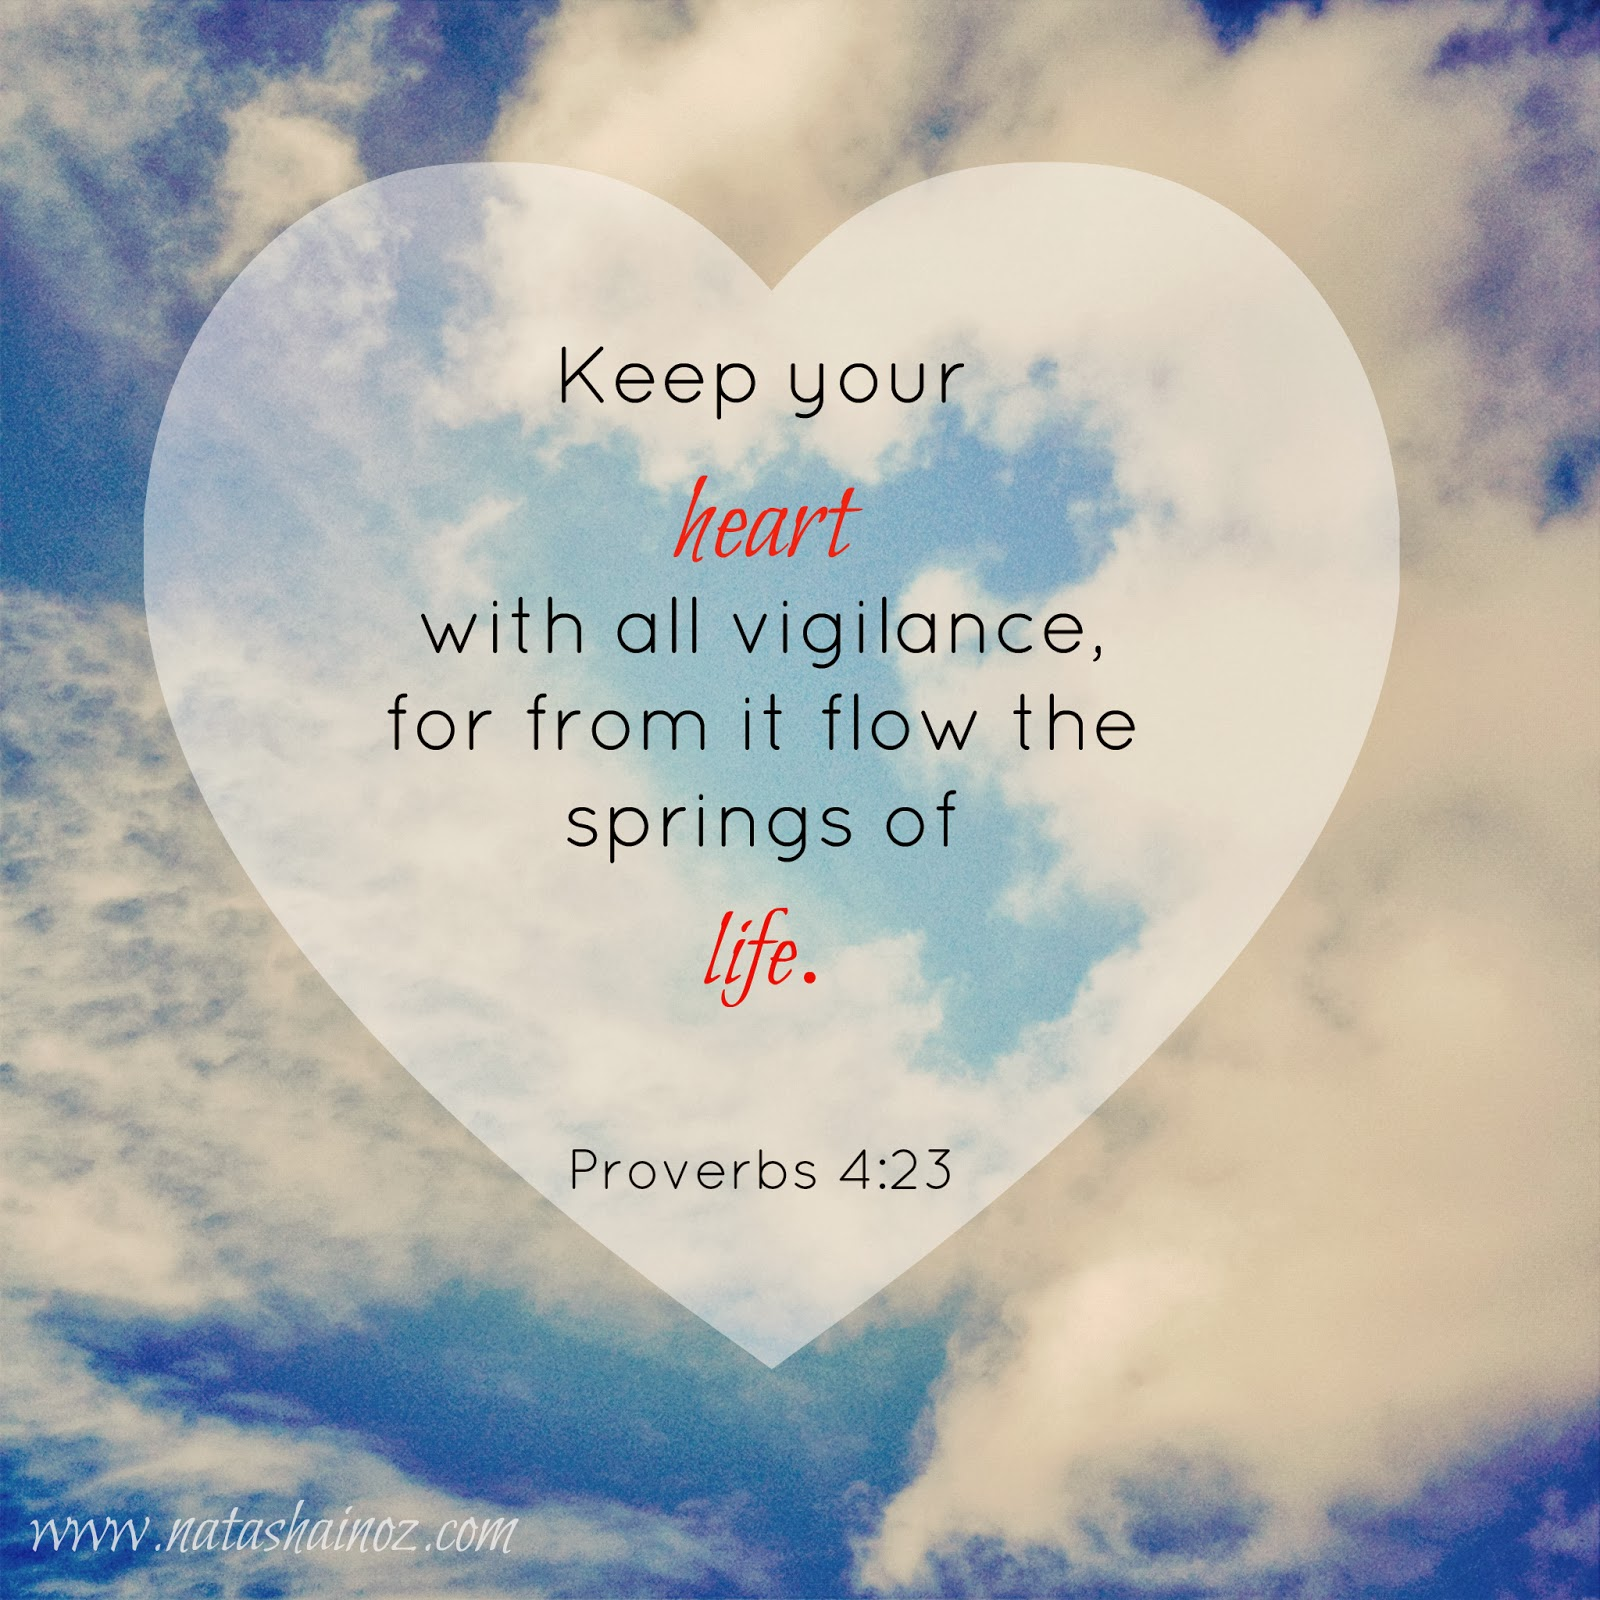 Tuesday Tune: My Heart Goes Boom Boom Boom, Keep your heart with all vigilance, Proverbs 4:23, Natasha in Oz